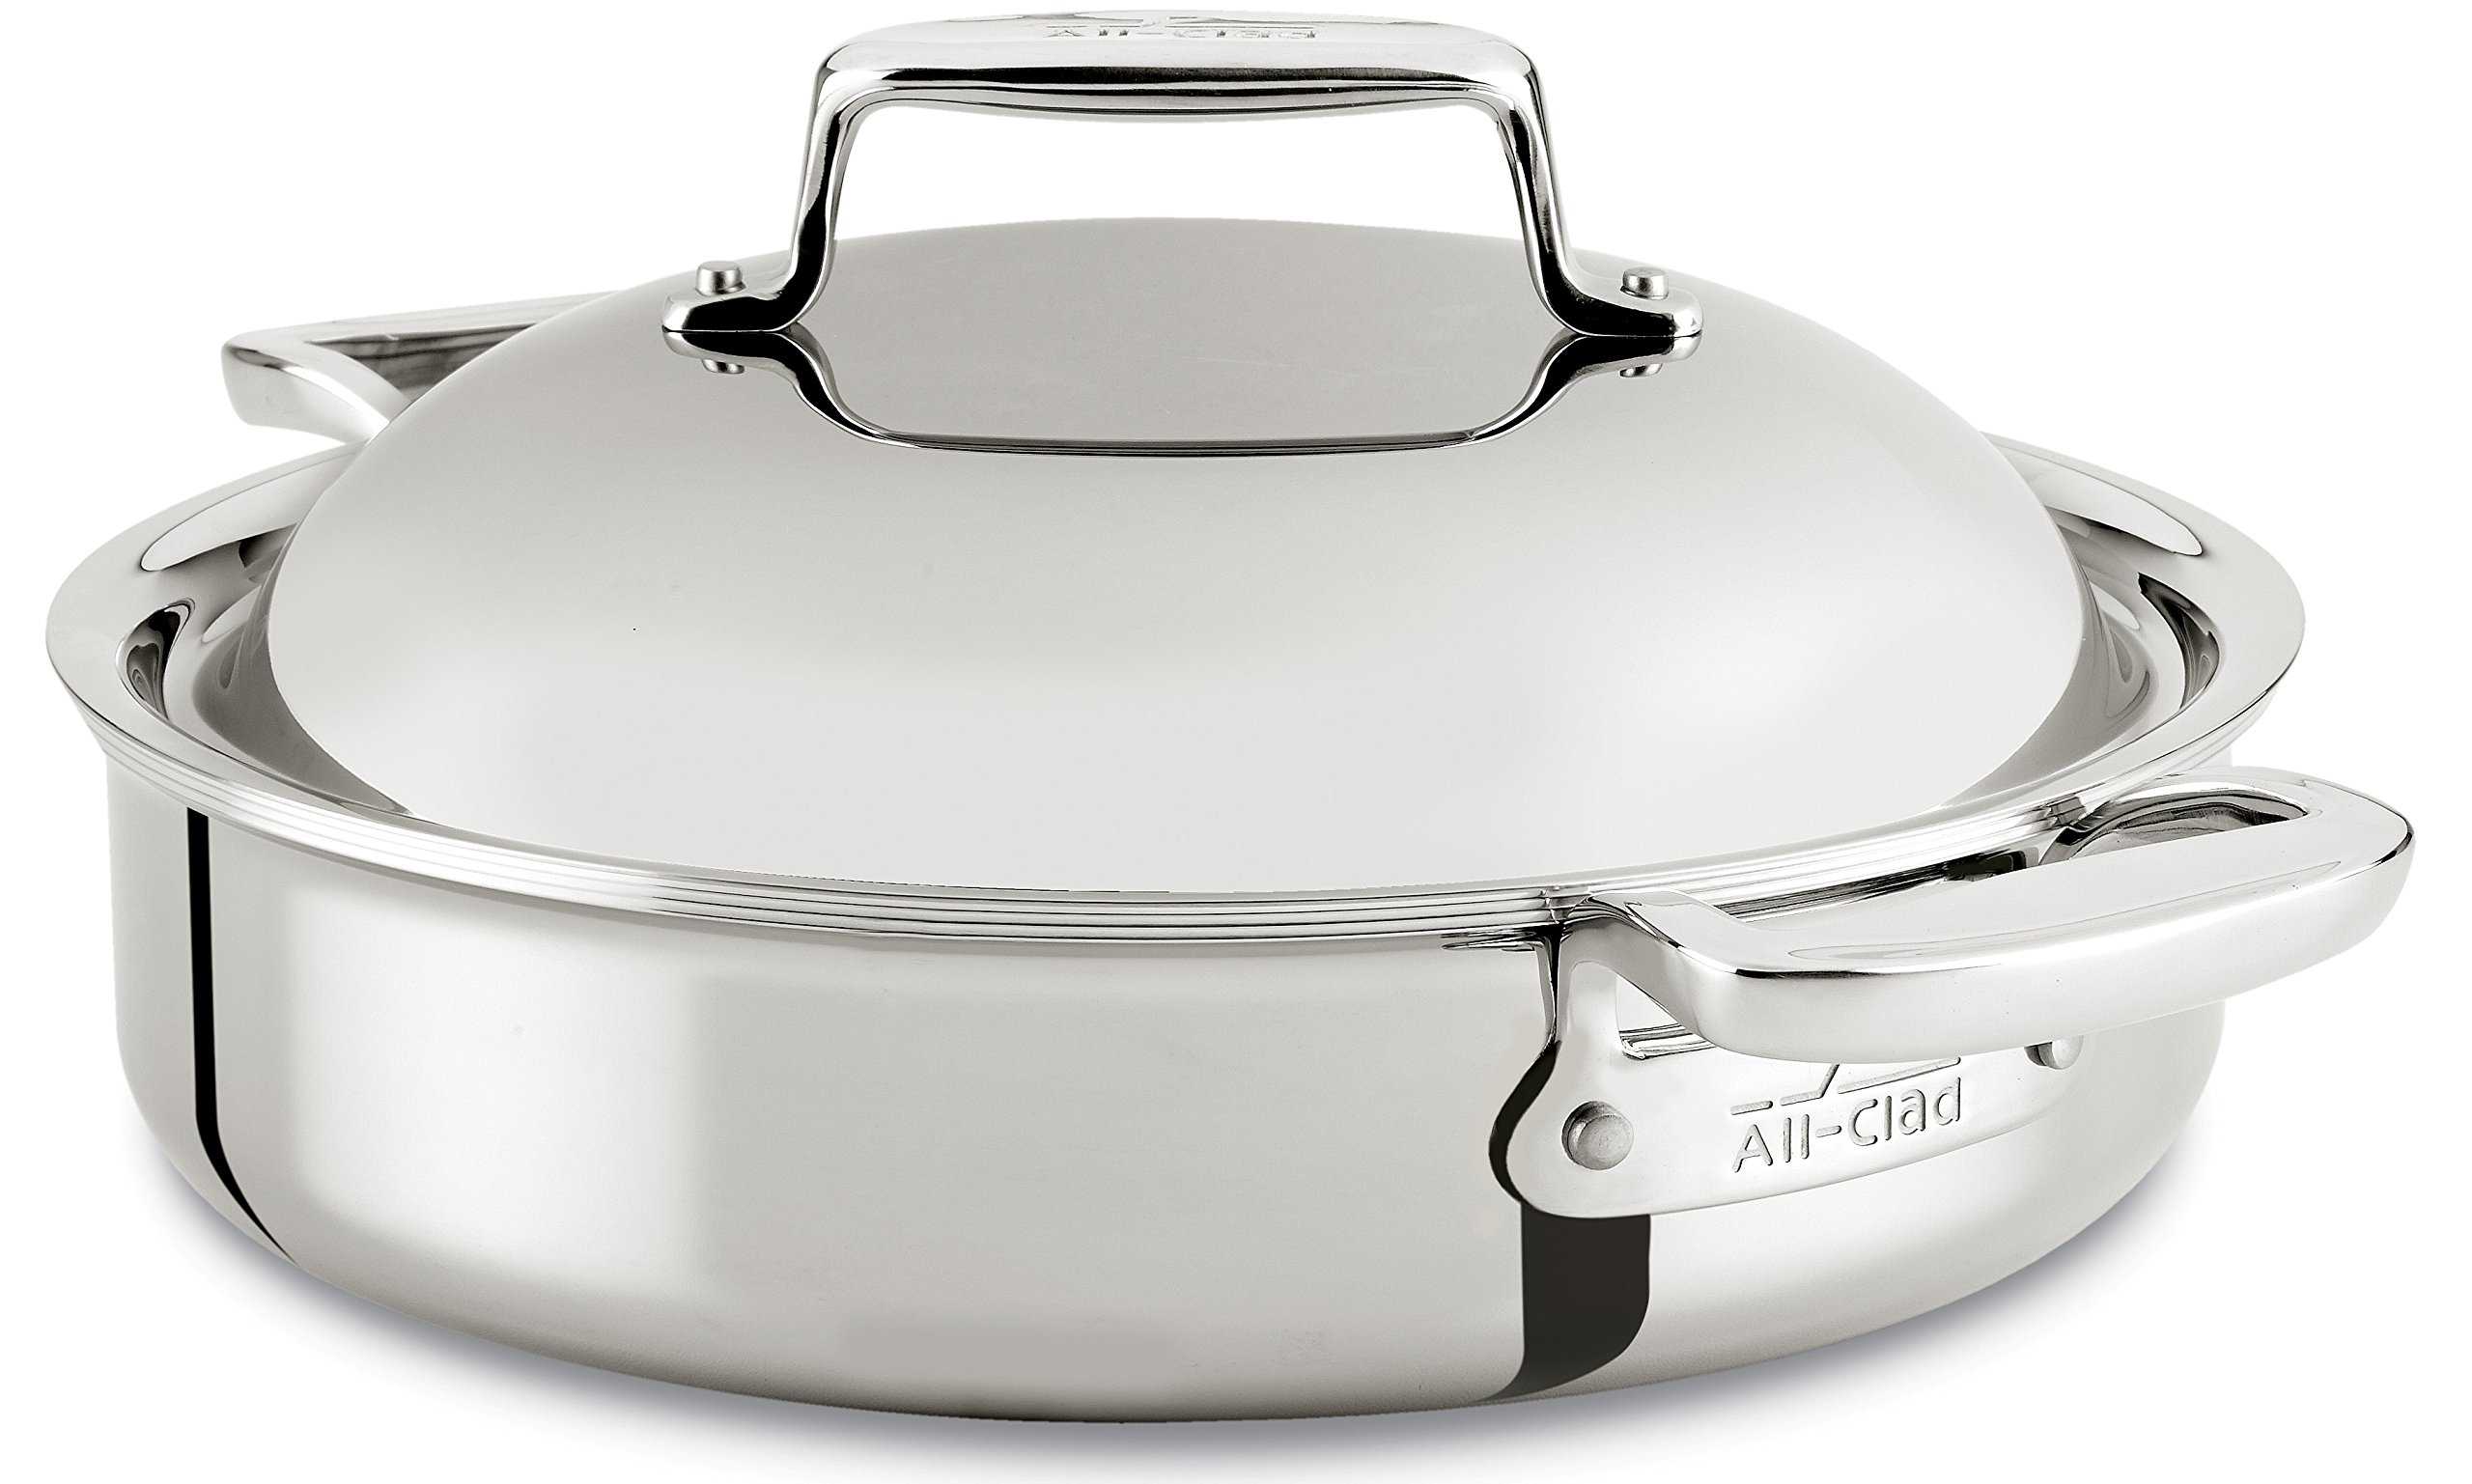 All-Clad SD7540416 D7 18/10 Stainless Steel 7-Ply Bonded Construction Dishwasher Safe Oven Safe Braiser Dutch Oven, 4-Quart, Silver